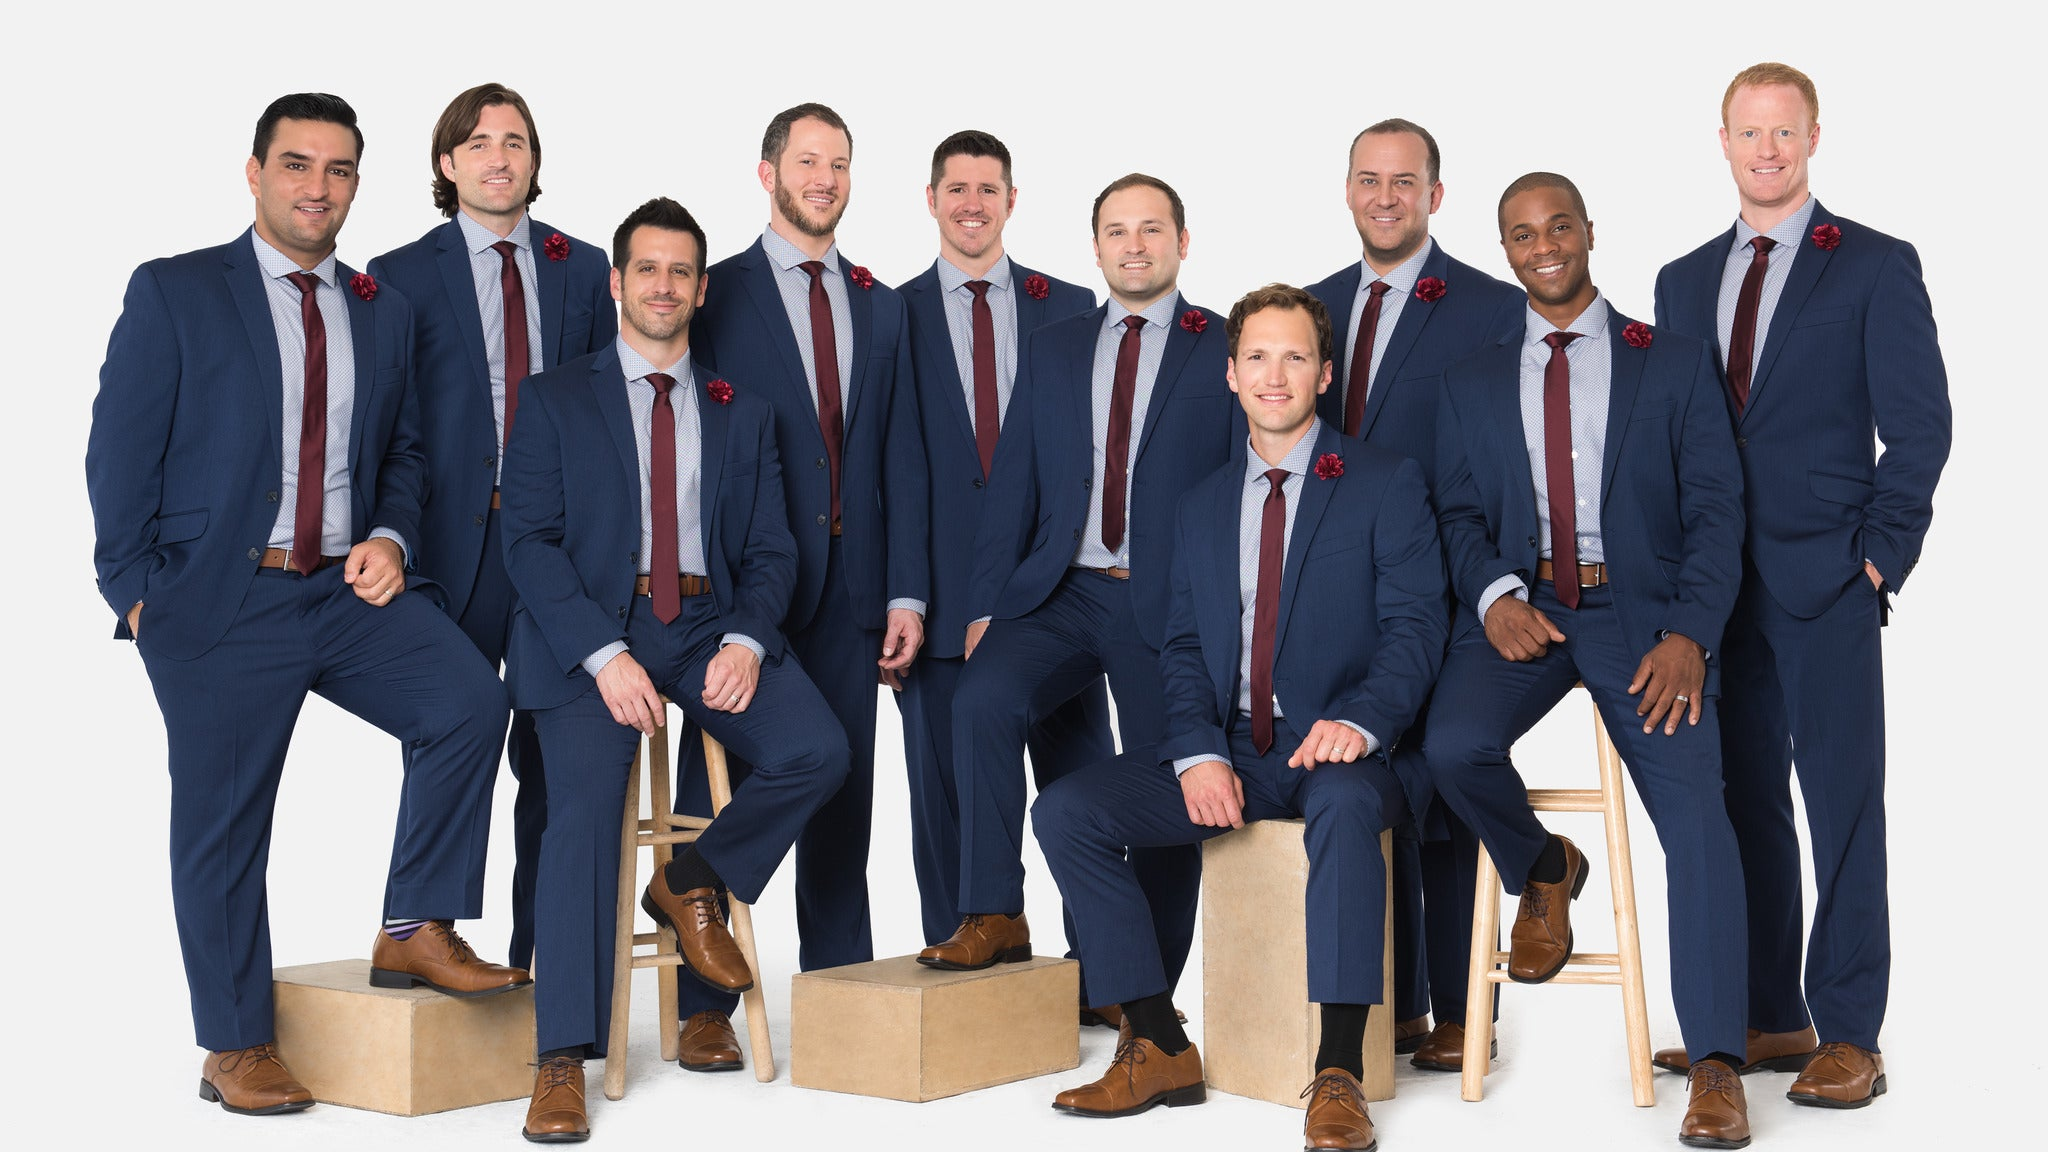 Straight No Chaser - Meet & Greet Packages at Walmart AMP